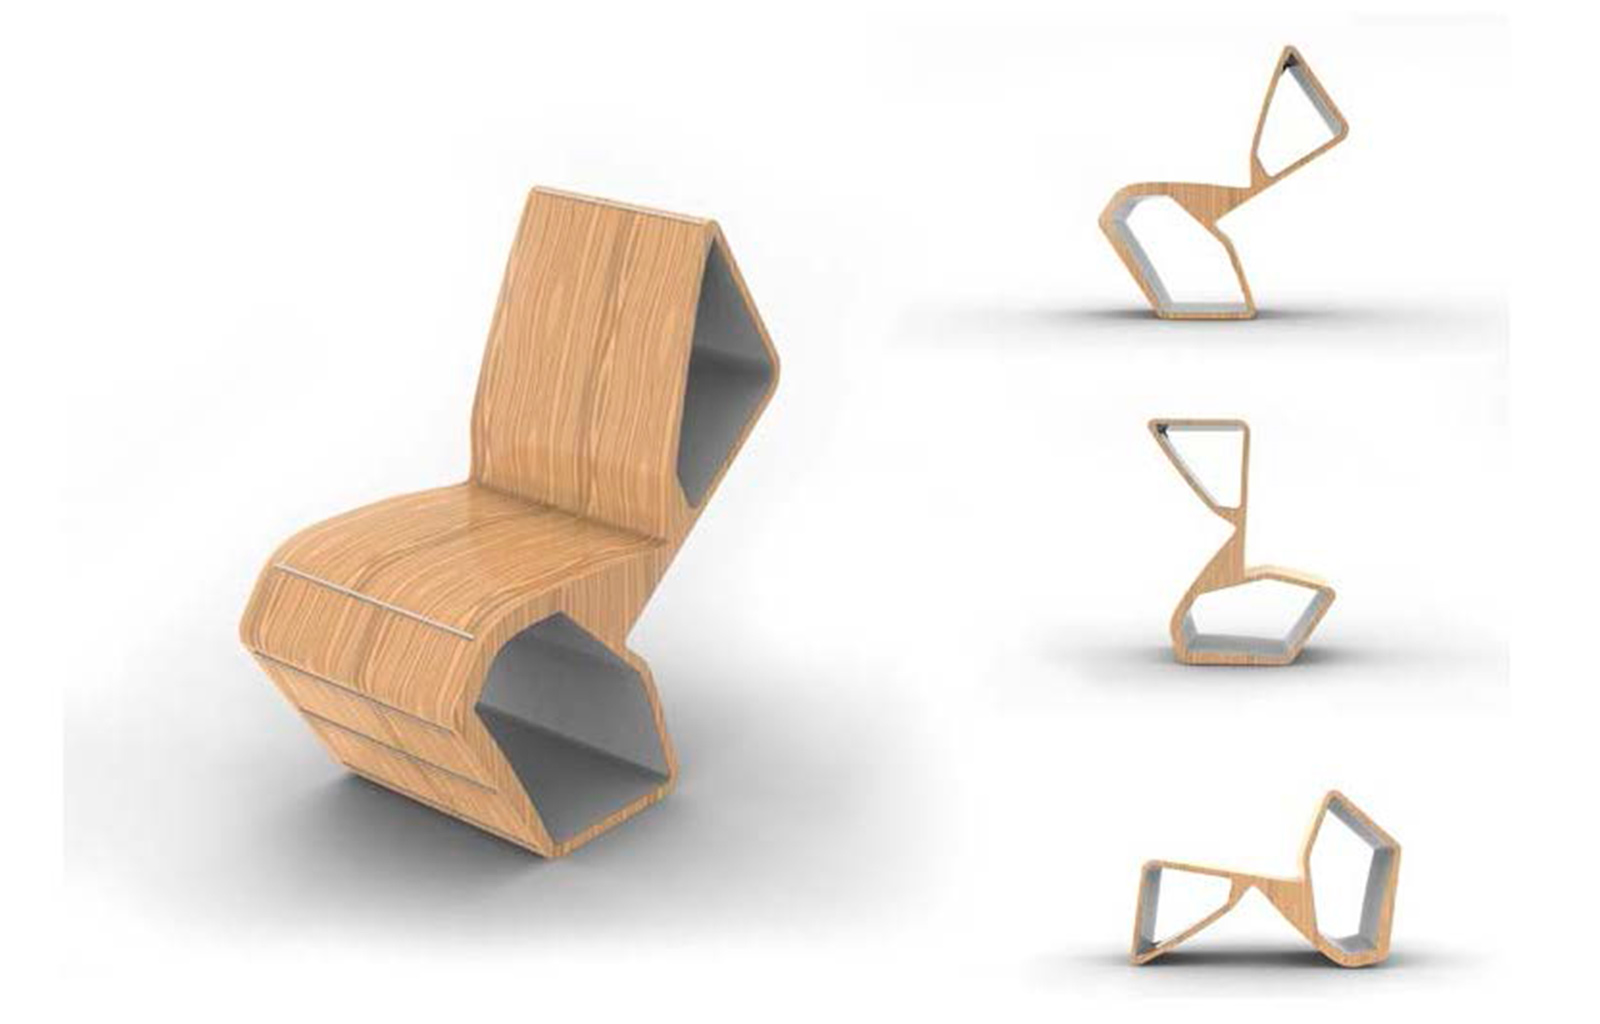 Postgraduate Course in Furniture Design